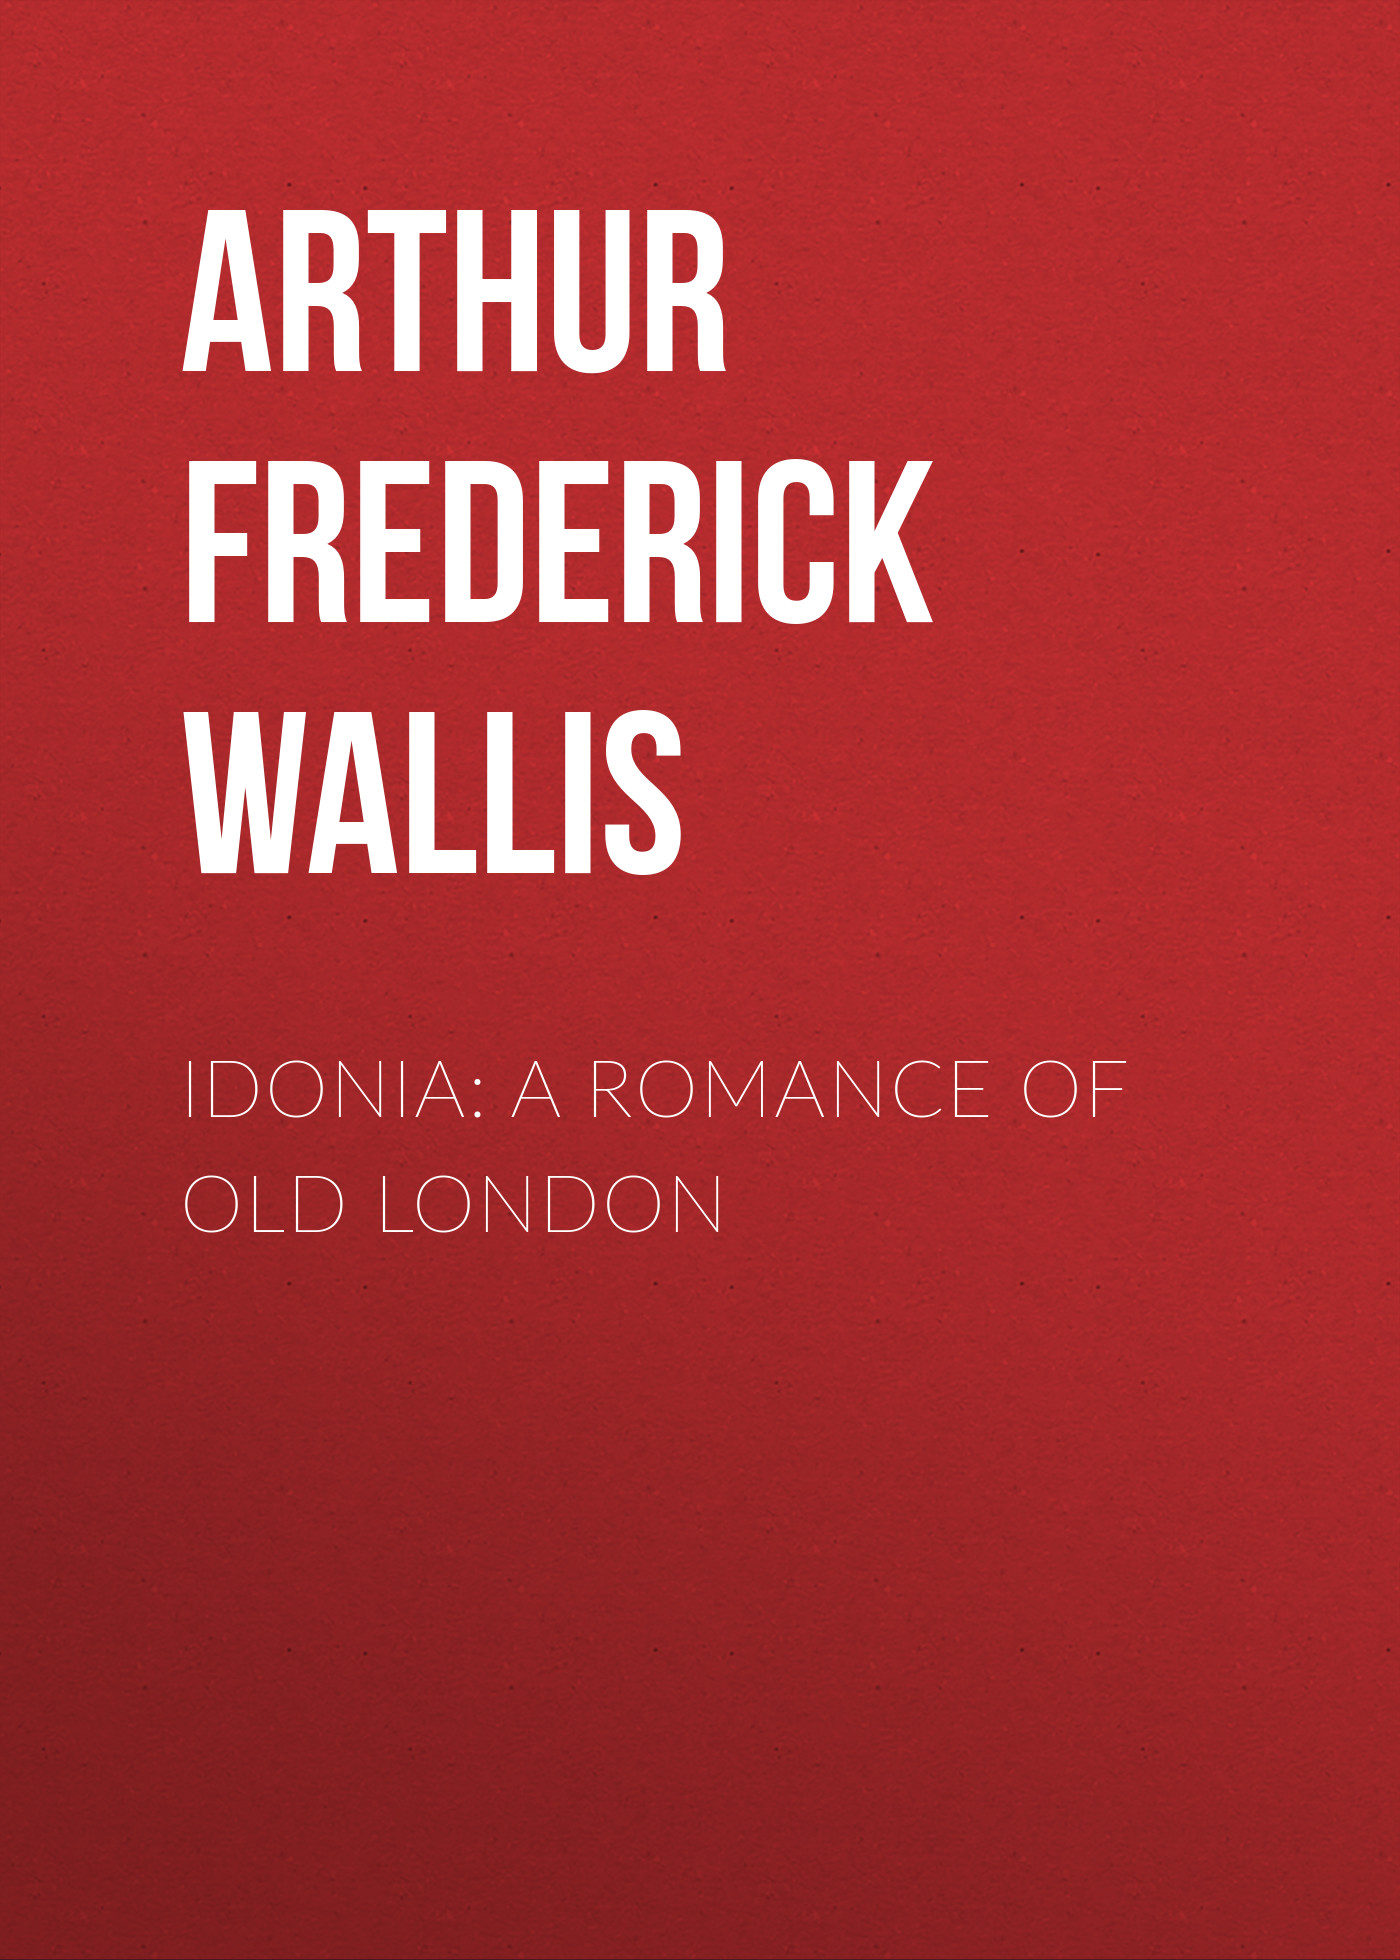 Arthur Frederick Wallis Idonia: A Romance of Old London disney набор посуды тачки 3 3 предмета